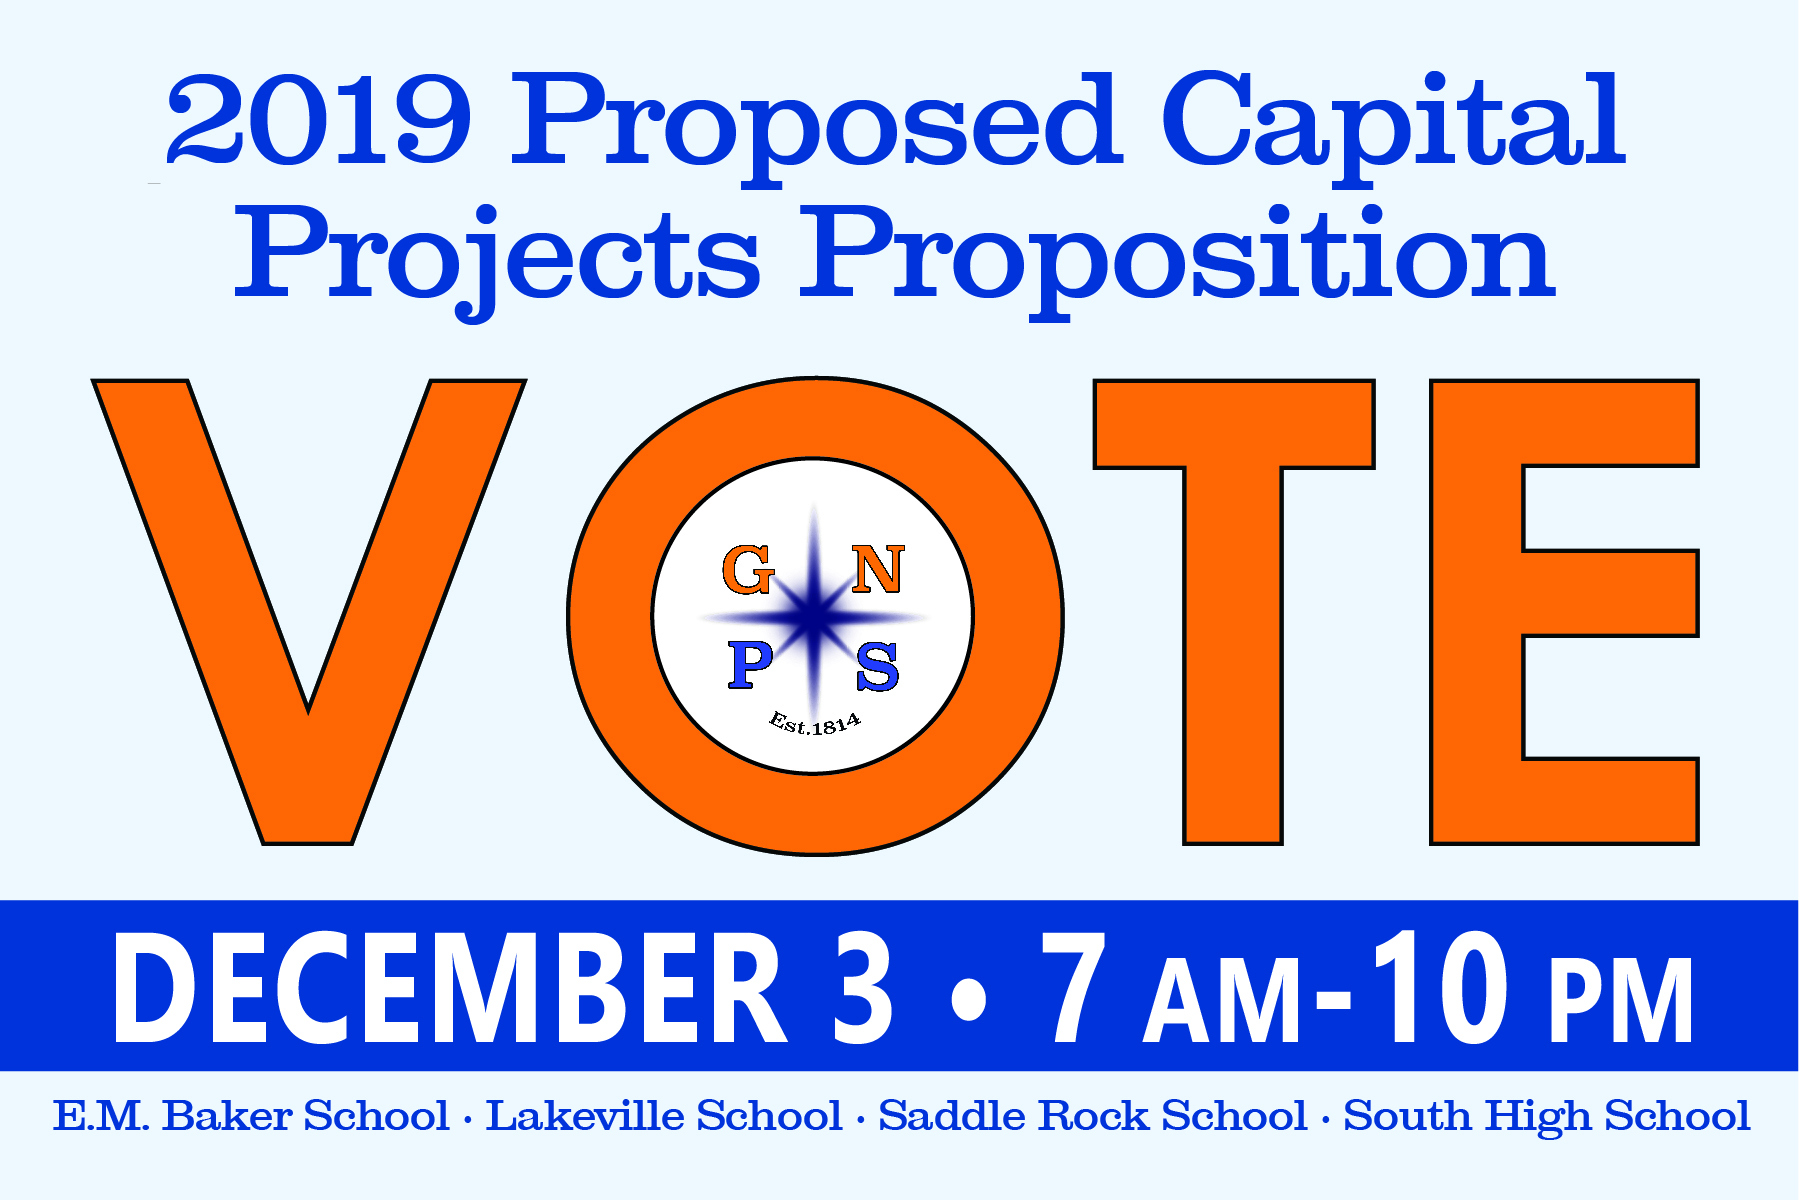 Vote December 3 from 7 a.m. - 10 p.m.